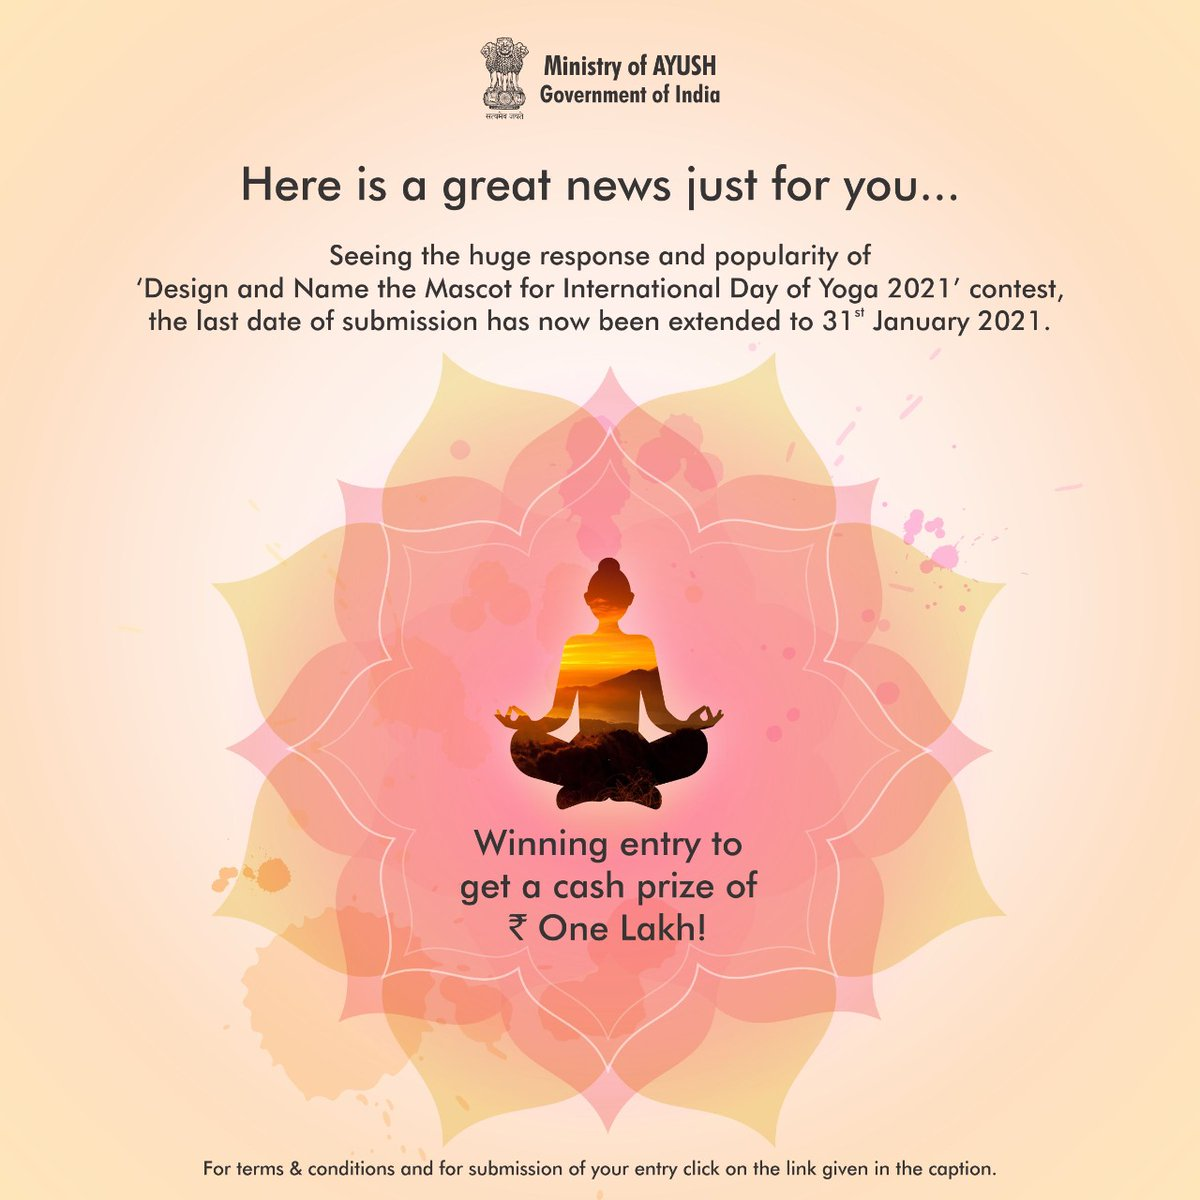 Congratulations! Now you have more time to showcase your creativity!  Seeing the immense response for 'Design and Name the Mascot for International Day of Yoga 2021' contest, the last date of submission has been extended.  The contest which has received 1207 entries from